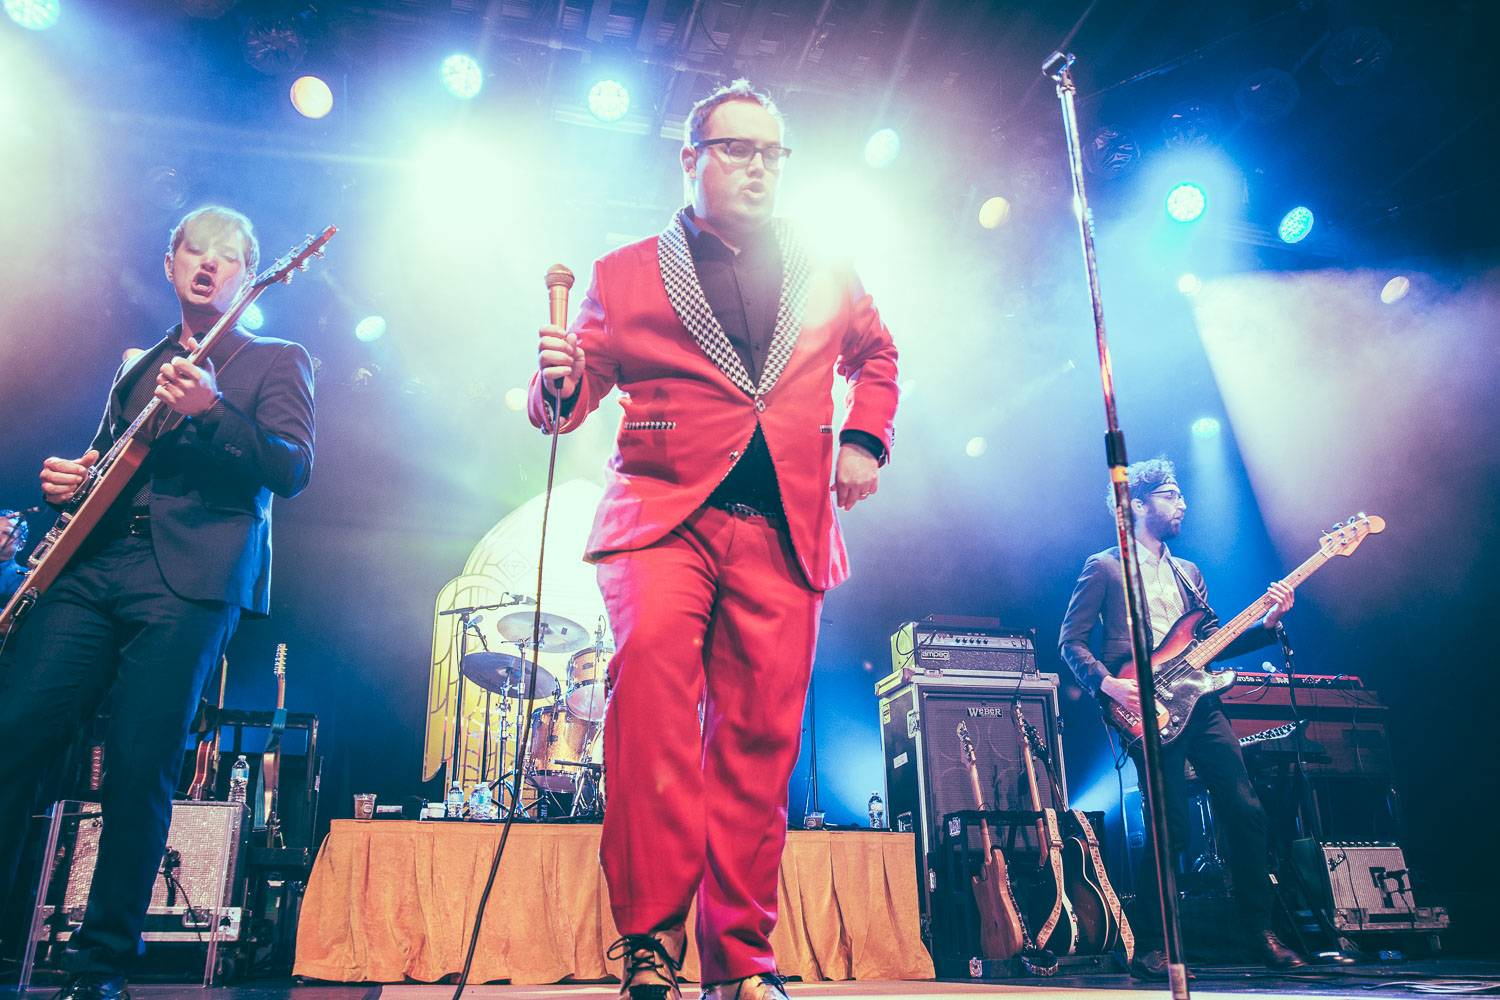 St. Paul and the Broken Bones at the Commodore Ballroom, Vancouver, Sept. 25 2016. Pavel Boiko photo.